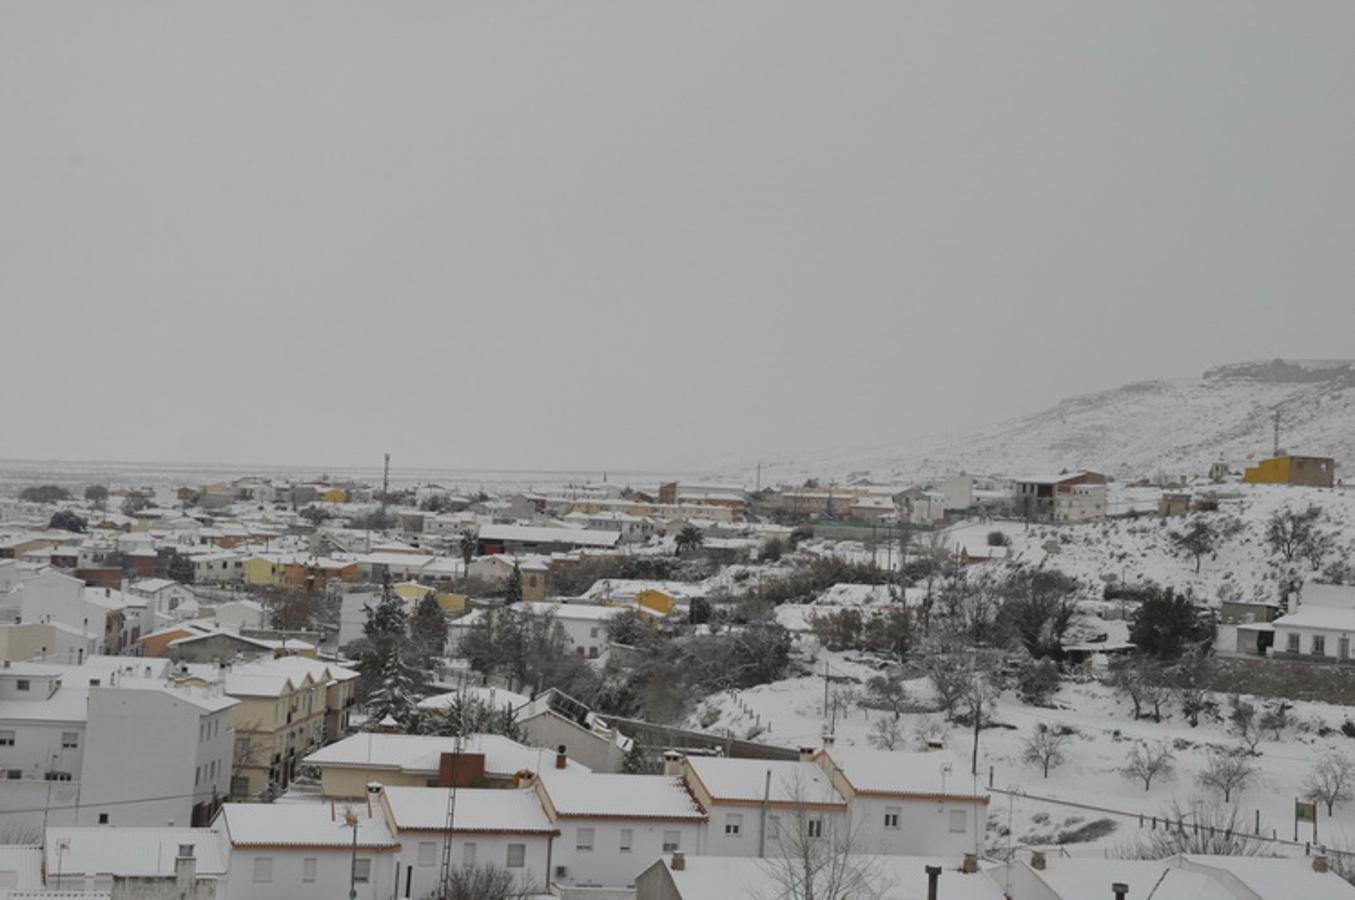 Espectacular nevada en Baza